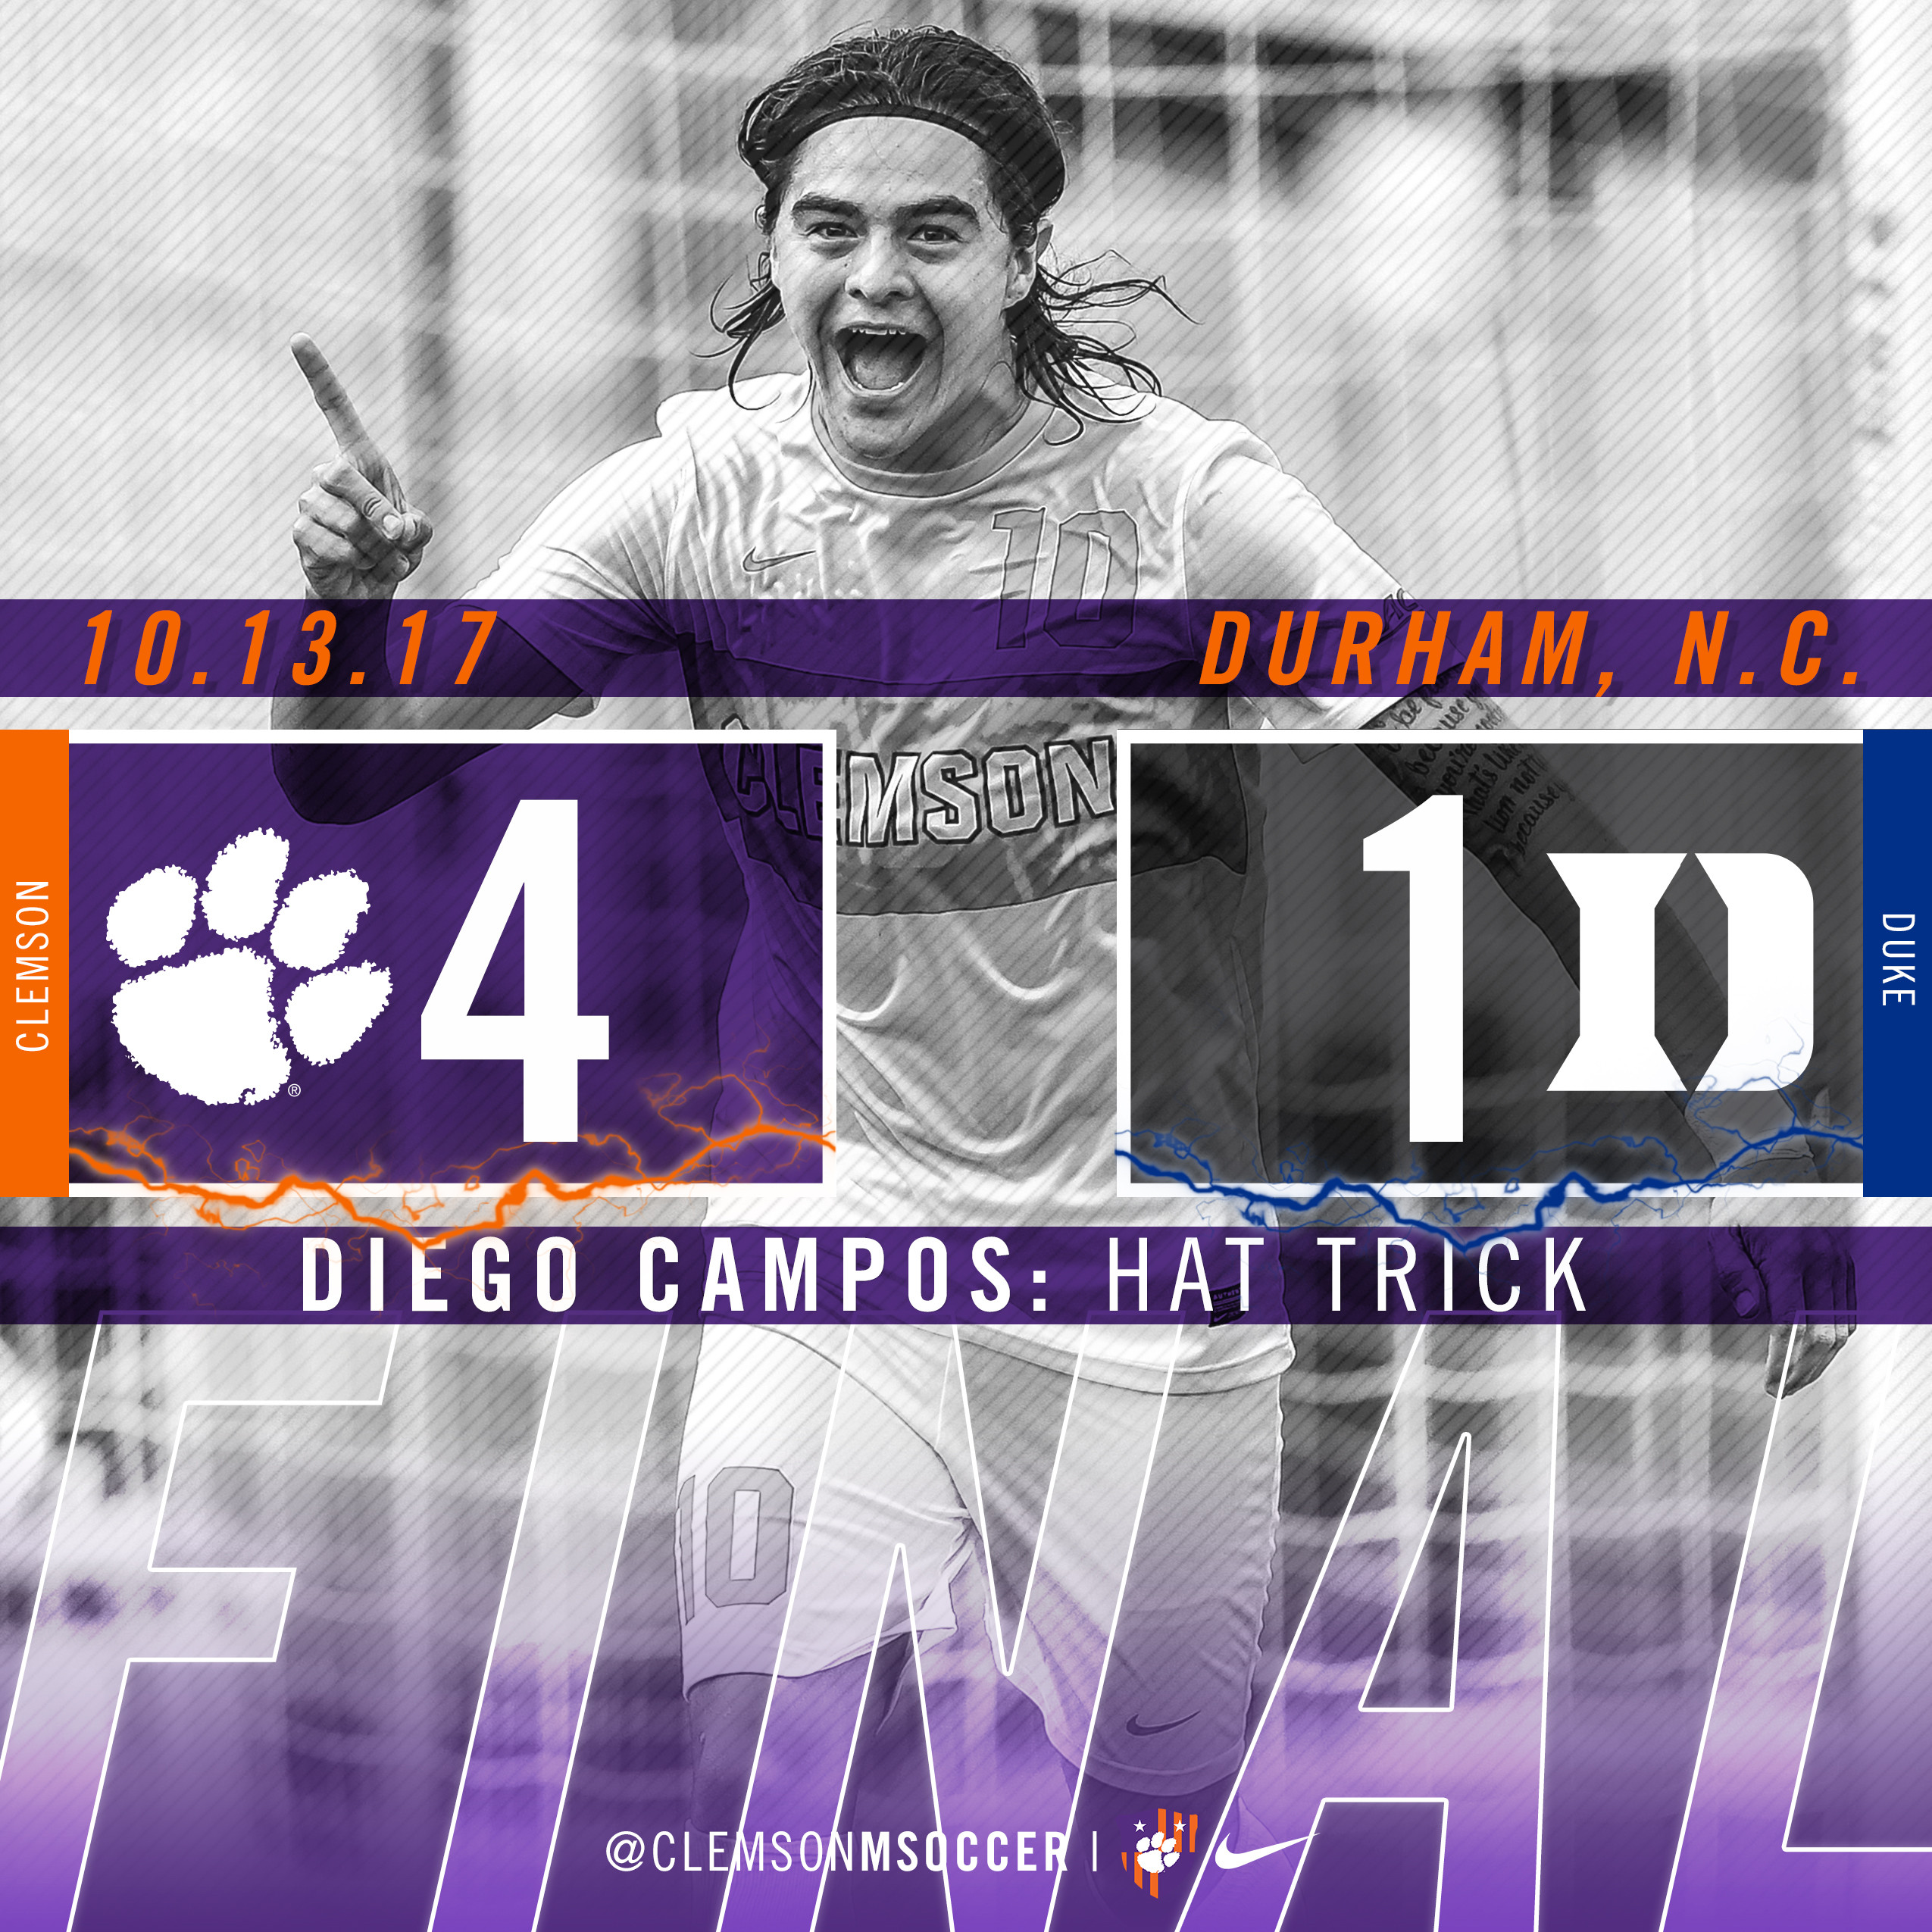 Campos' Hat Trick Powers No. 11 Clemson Past No. 16 Duke 4-1